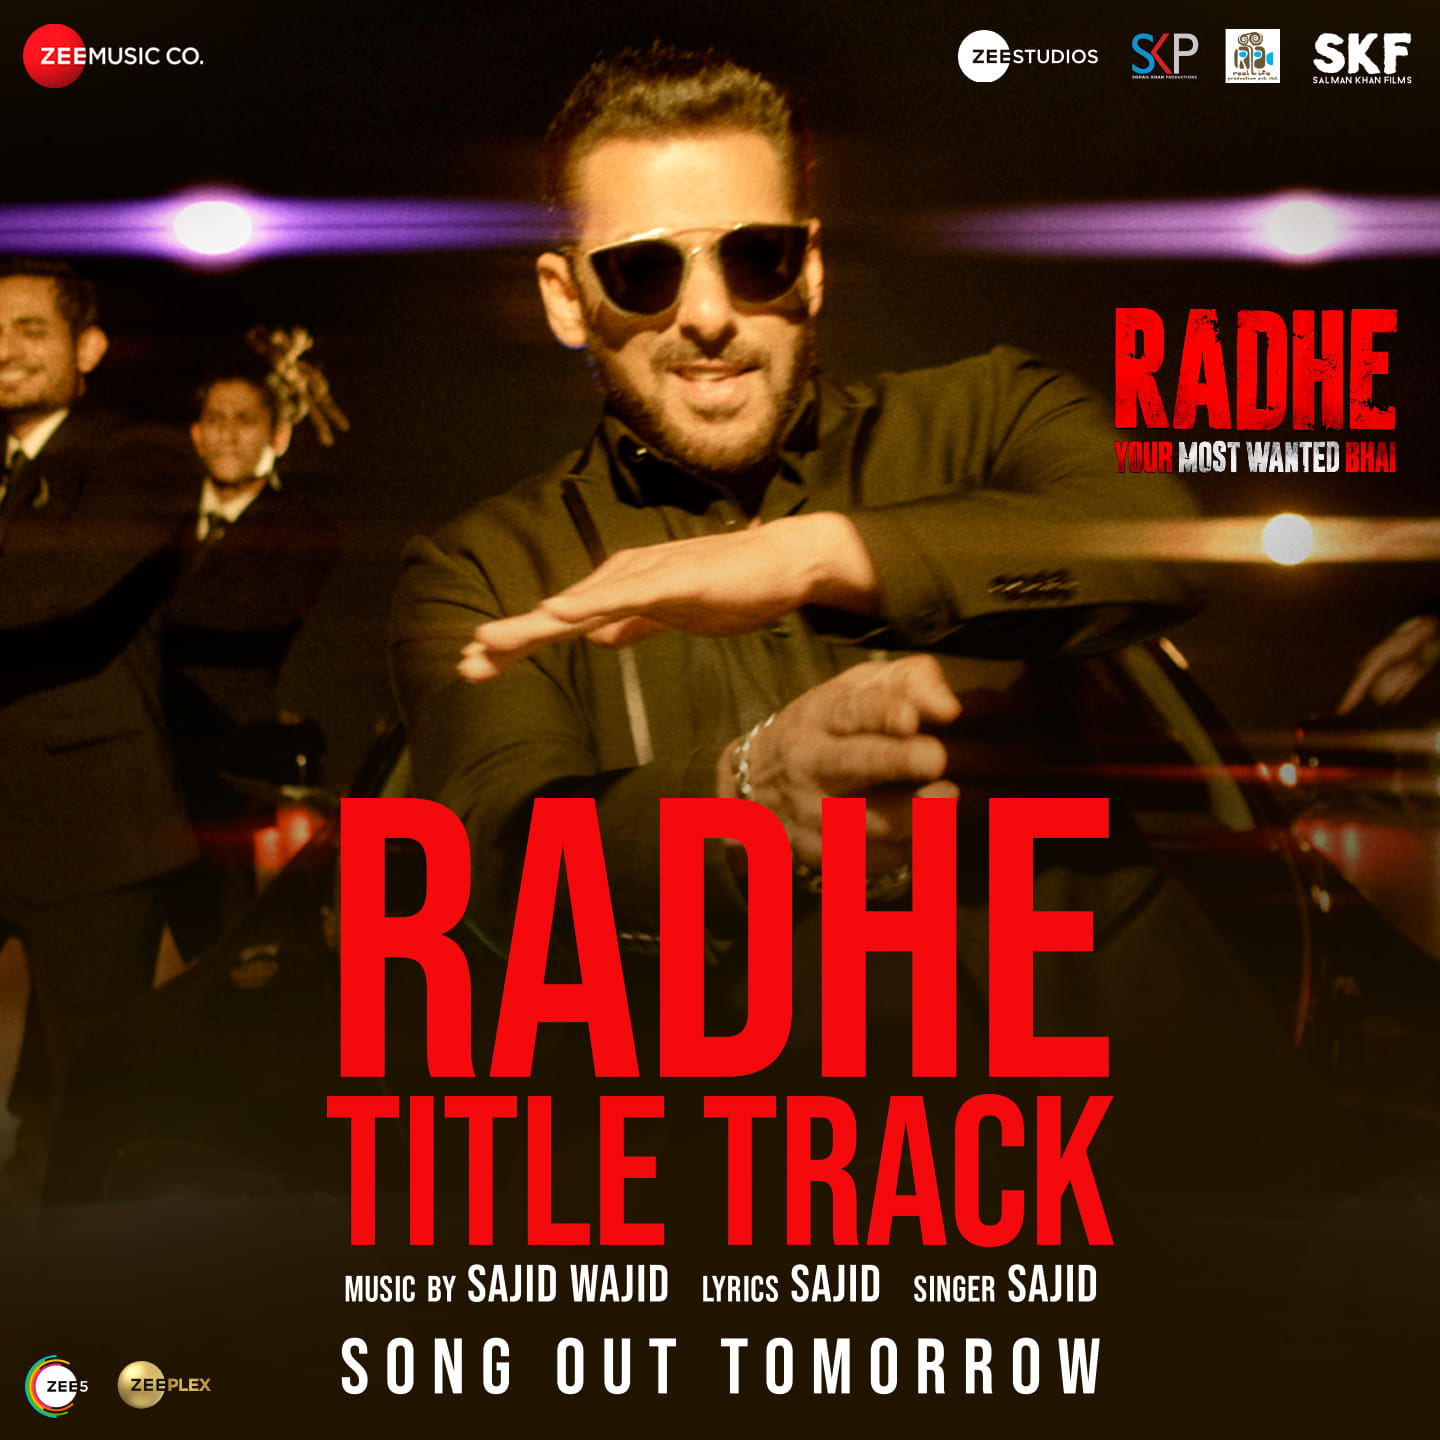 Radhe Title Track songs will be released Tomorrow